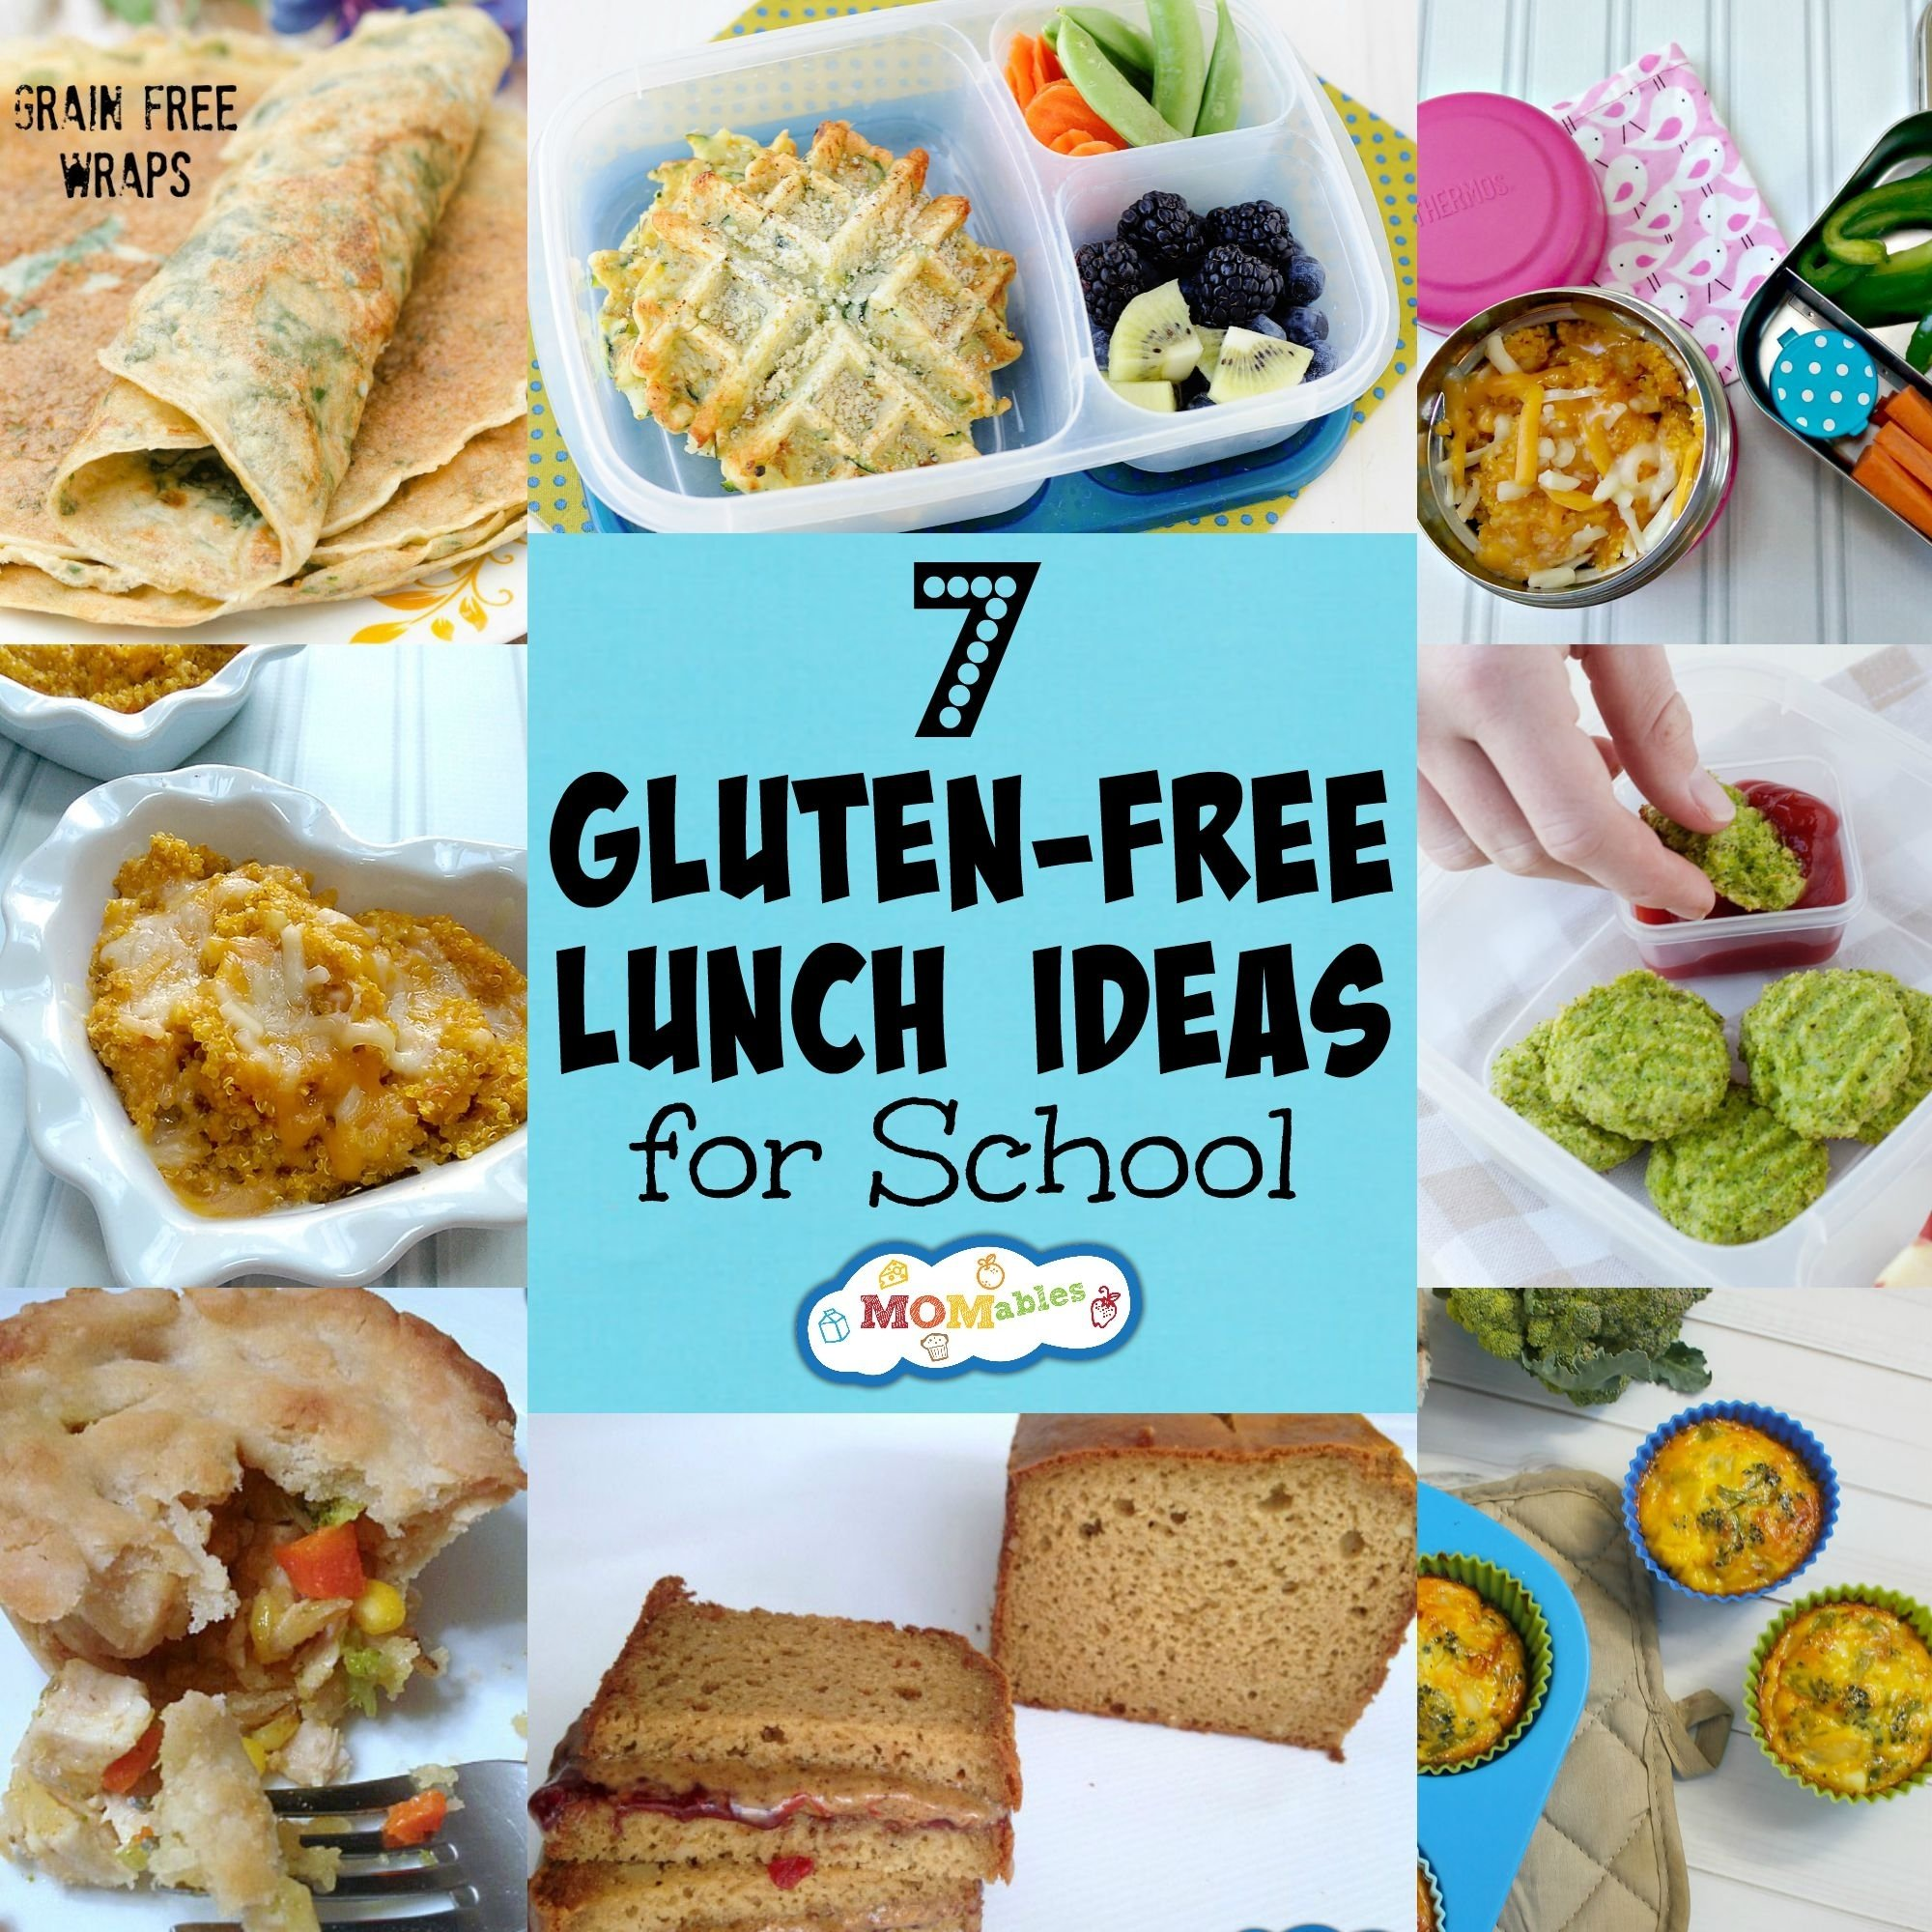 7 gluten free lunch ideas for school - momables